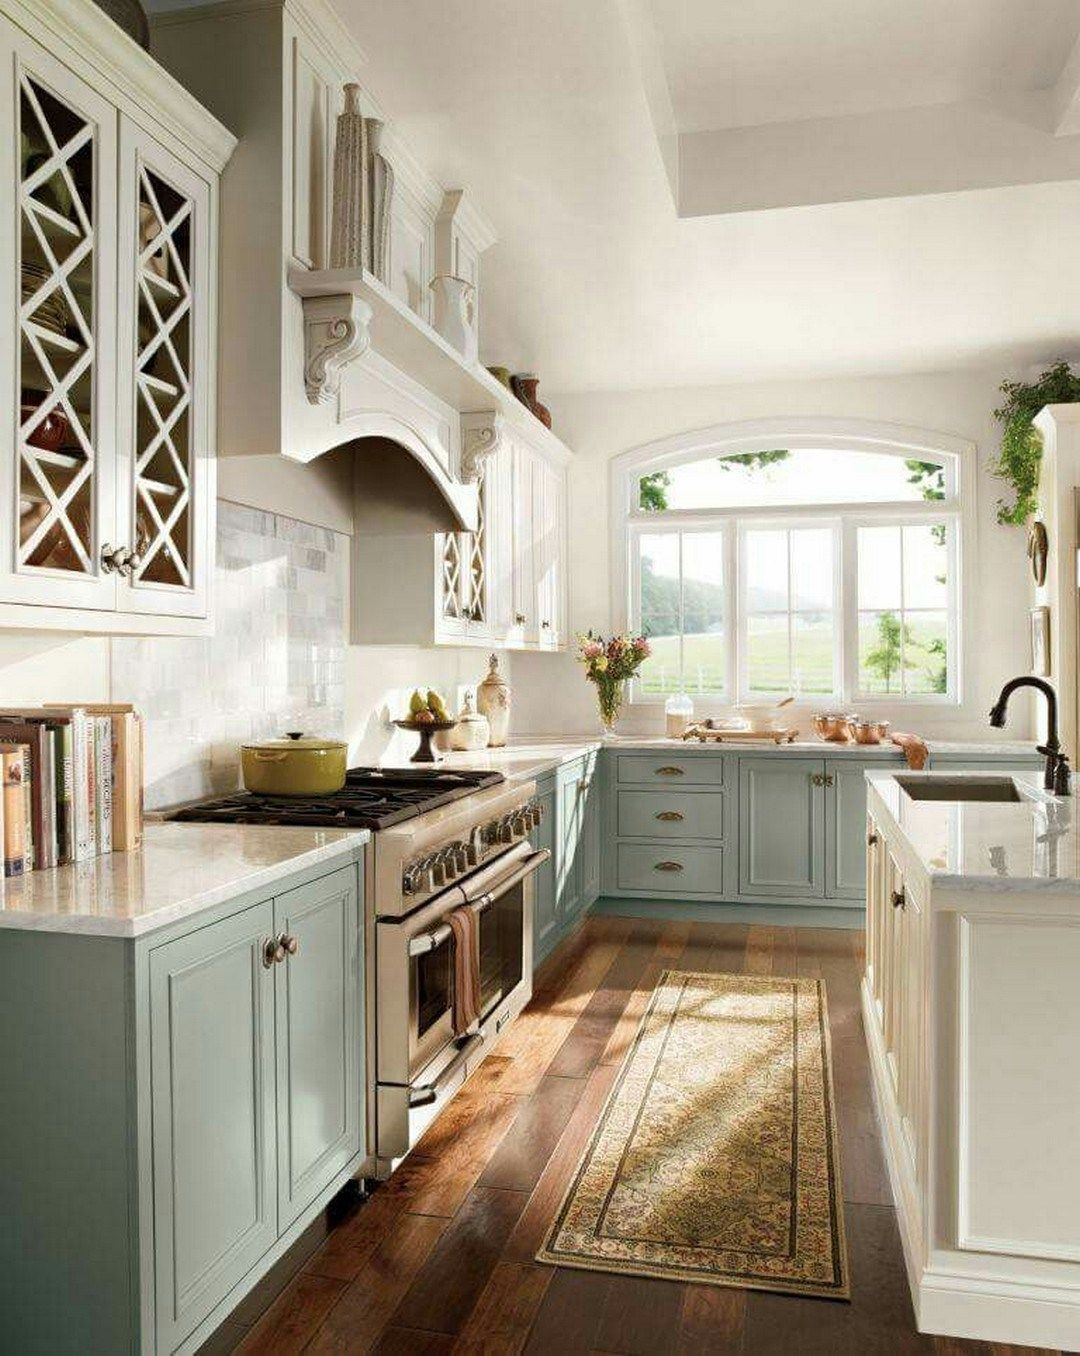 25+ Stunning Picture for Choosing the Perfect Kitchen Rugs | French ...